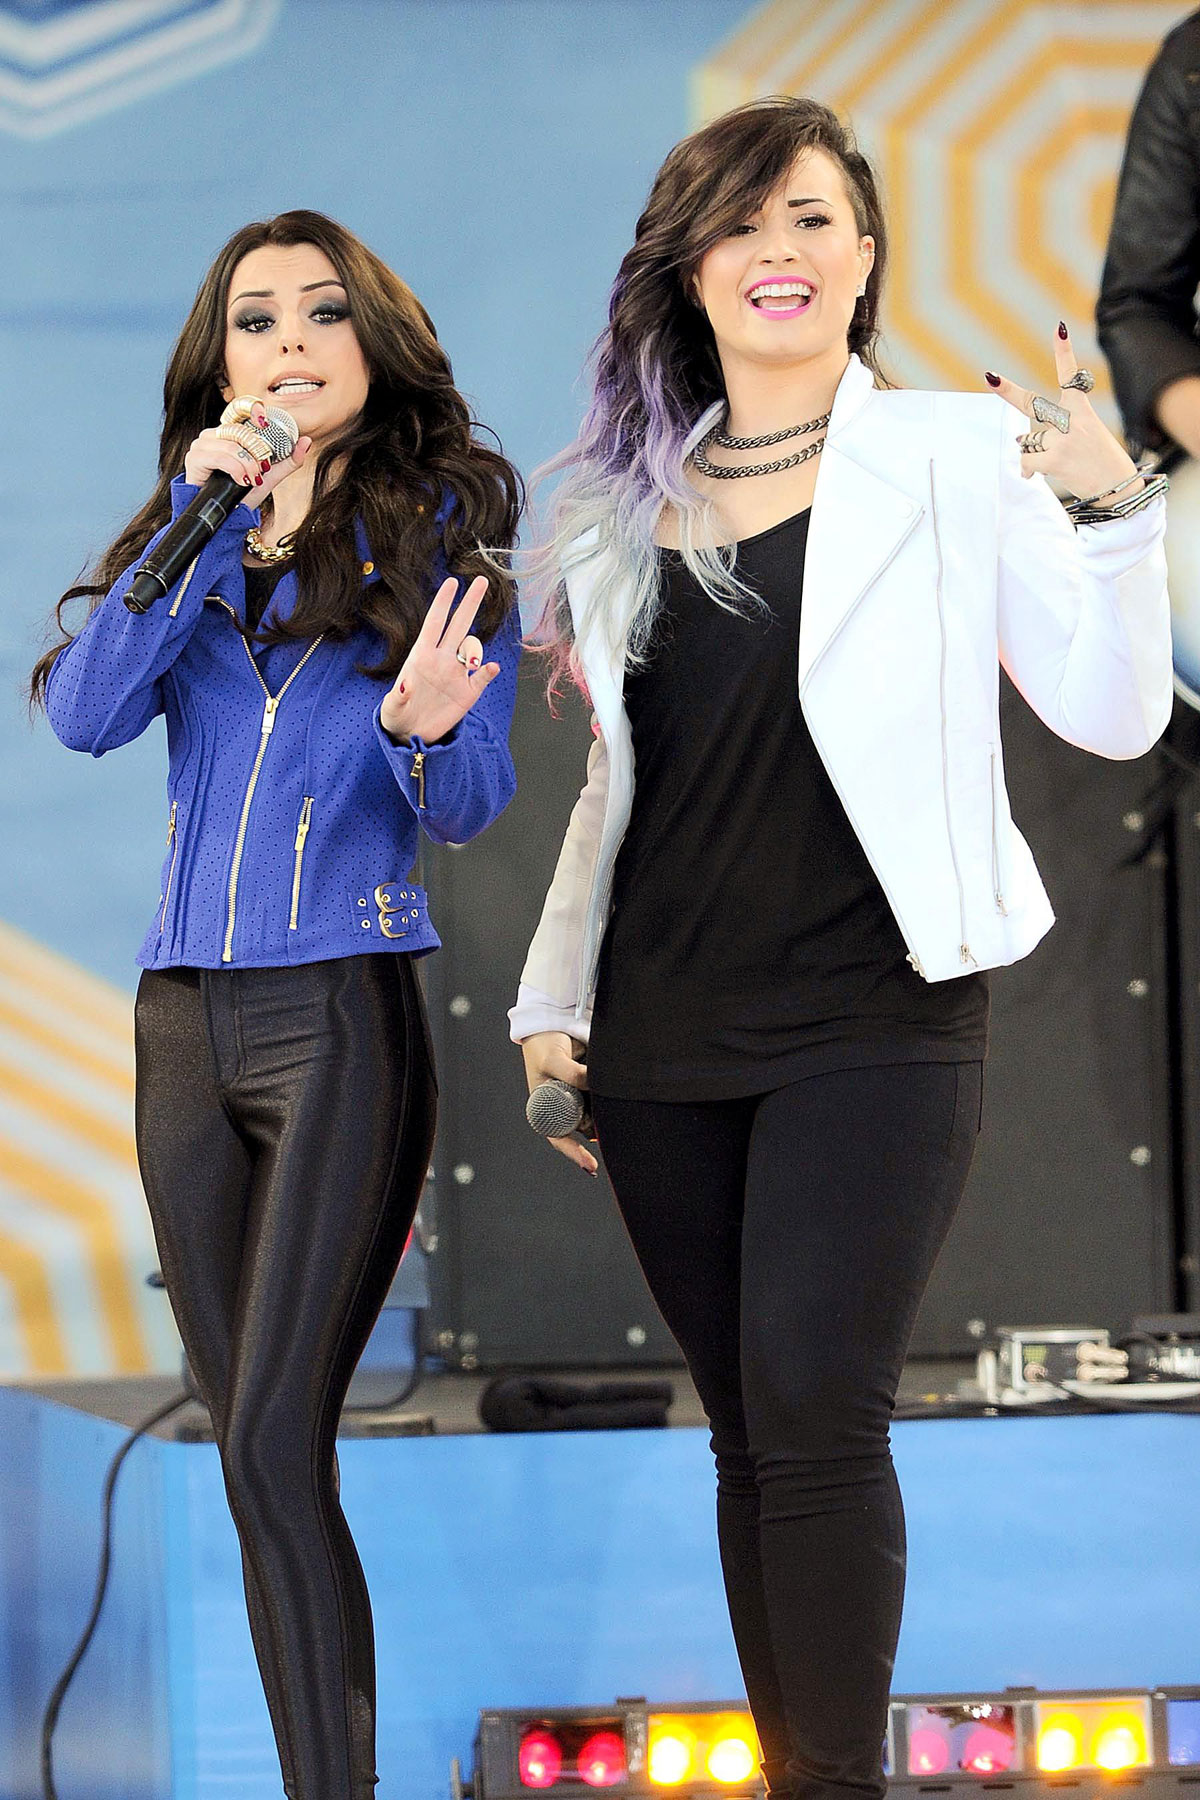 Cher Lloyd at Good Morning America